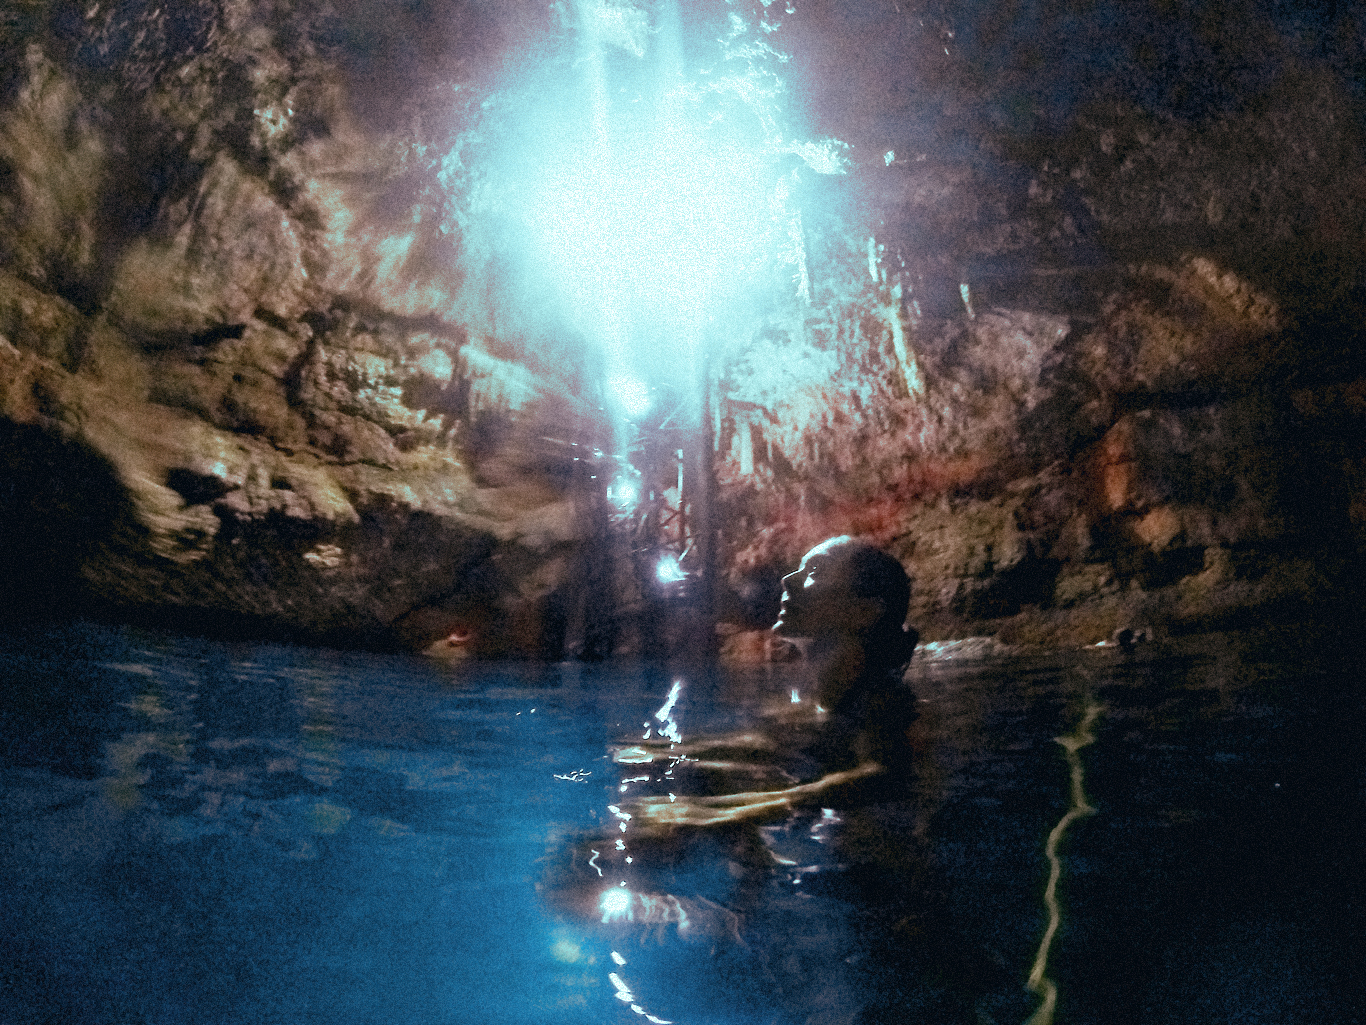 cenote in tulum, mexico